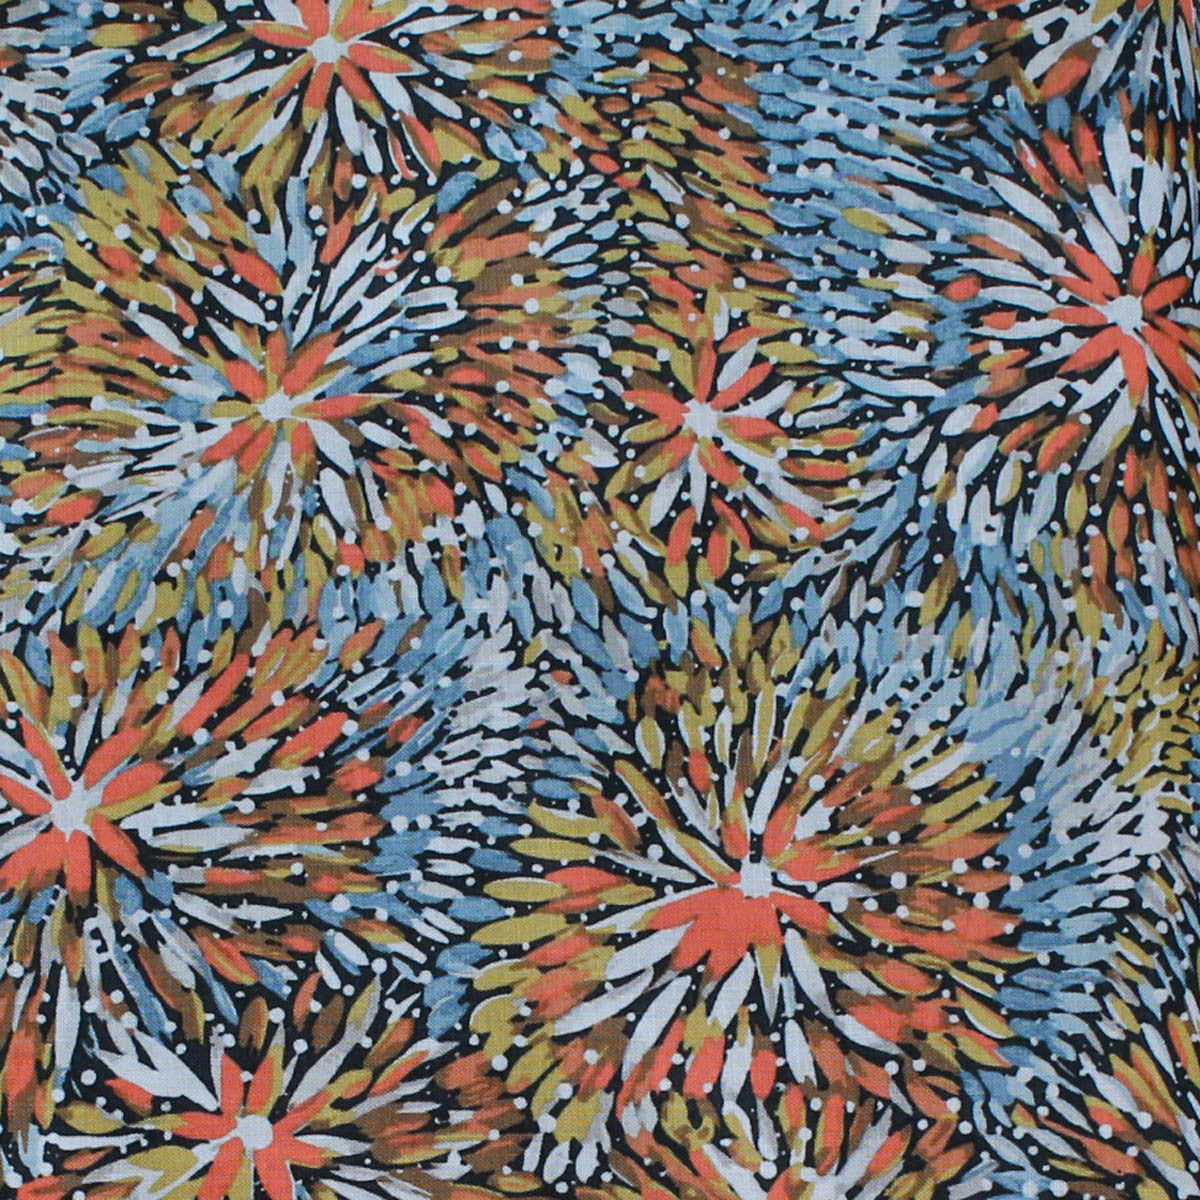 EMU BUSH BLUE by Australian Aboriginal Artist BARBARA EGAN